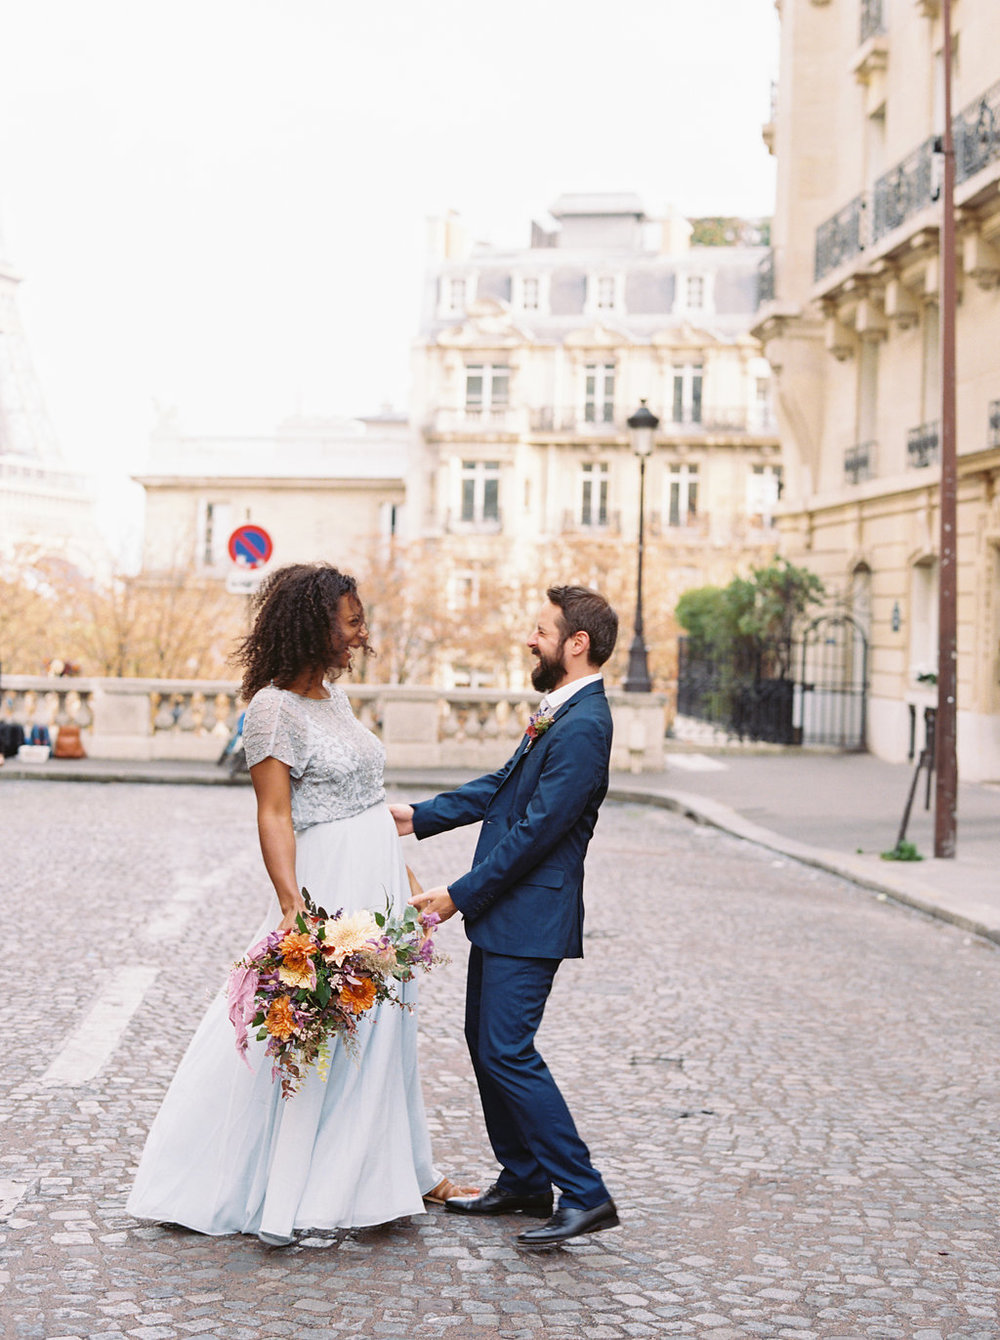 Paris Elopement in front of the Eiffel Tower // Lush, natural wedding flowers